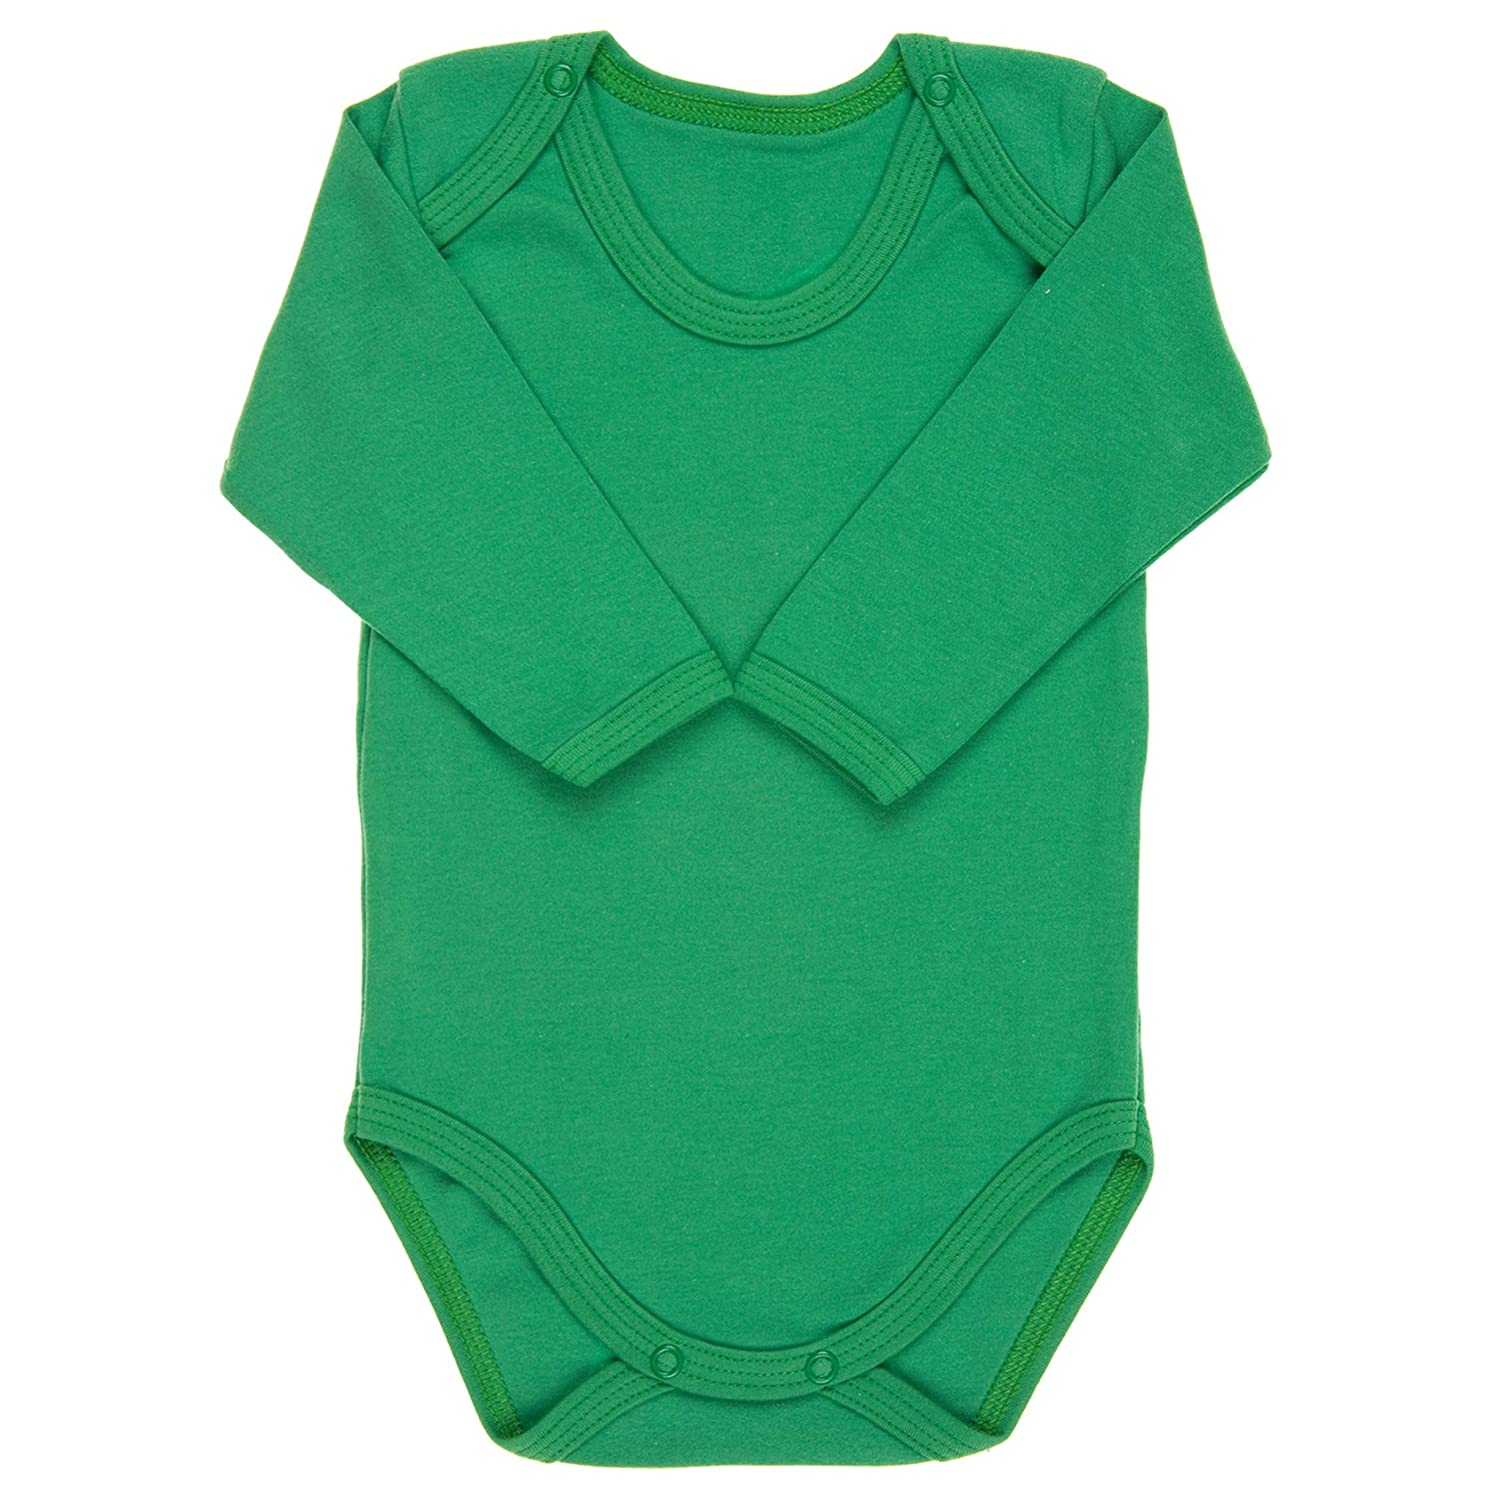 3cfc81f5fd6 The Little Legwear Company Bodysuit Vests Long Sleeved Baby Girls Boys  Plain Colours 100% Cotton Jersey  Amazon.co.uk  Clothing